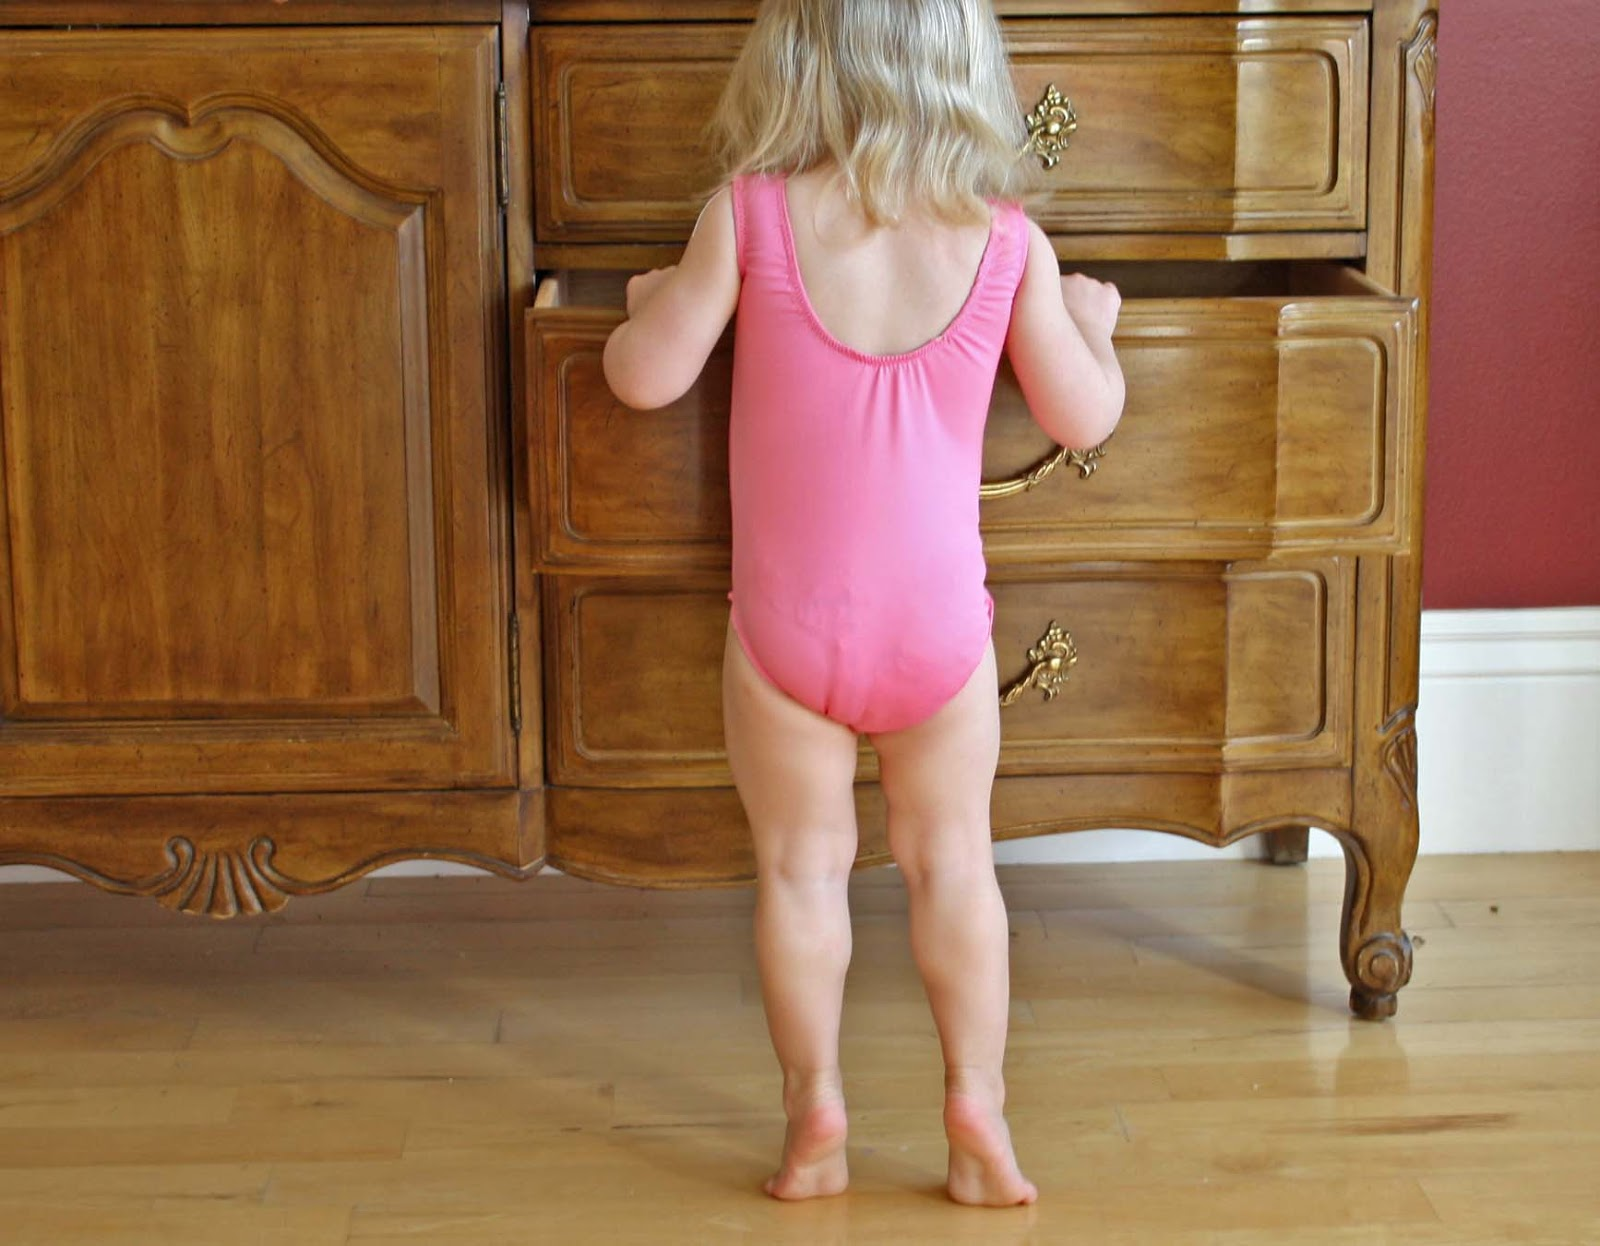 Kids Wearing Wet Diapers Over a dry regular diaper. galleryhip.com.